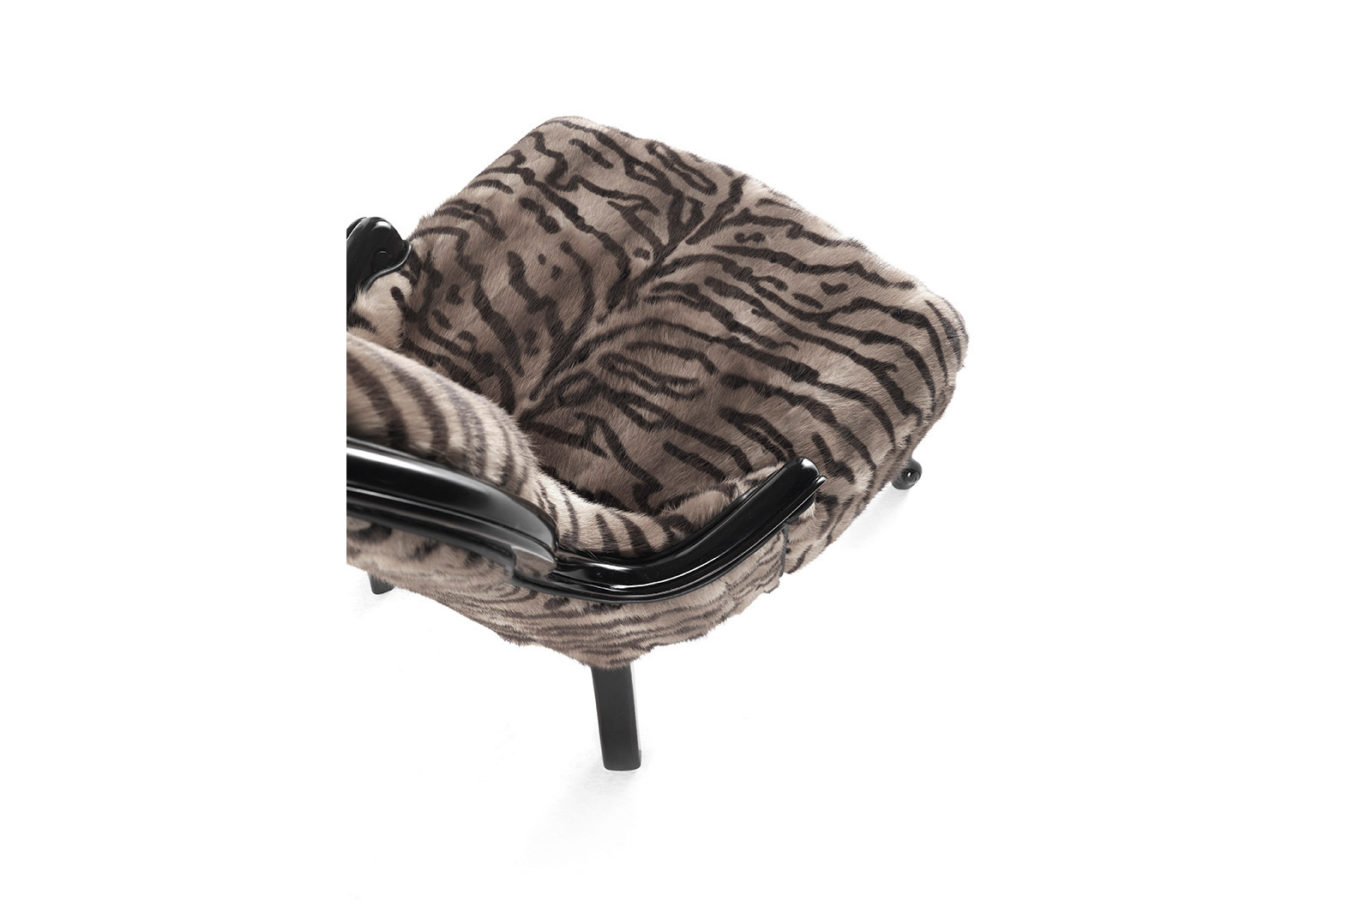 Gianfranco Ferre Home Chalet Armchair 01